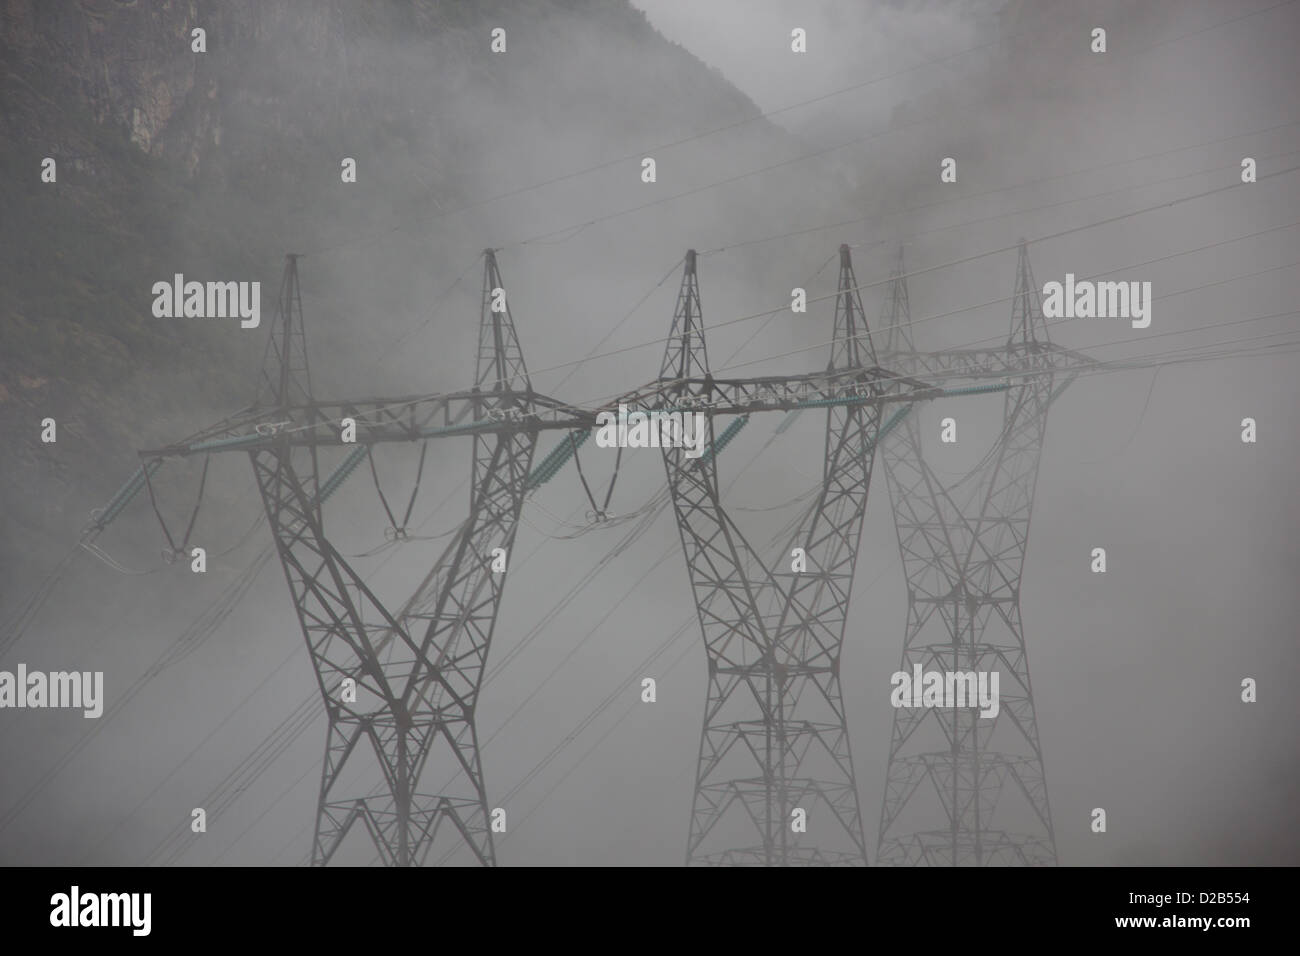 Picture of some powerlines in fog - Stock Image